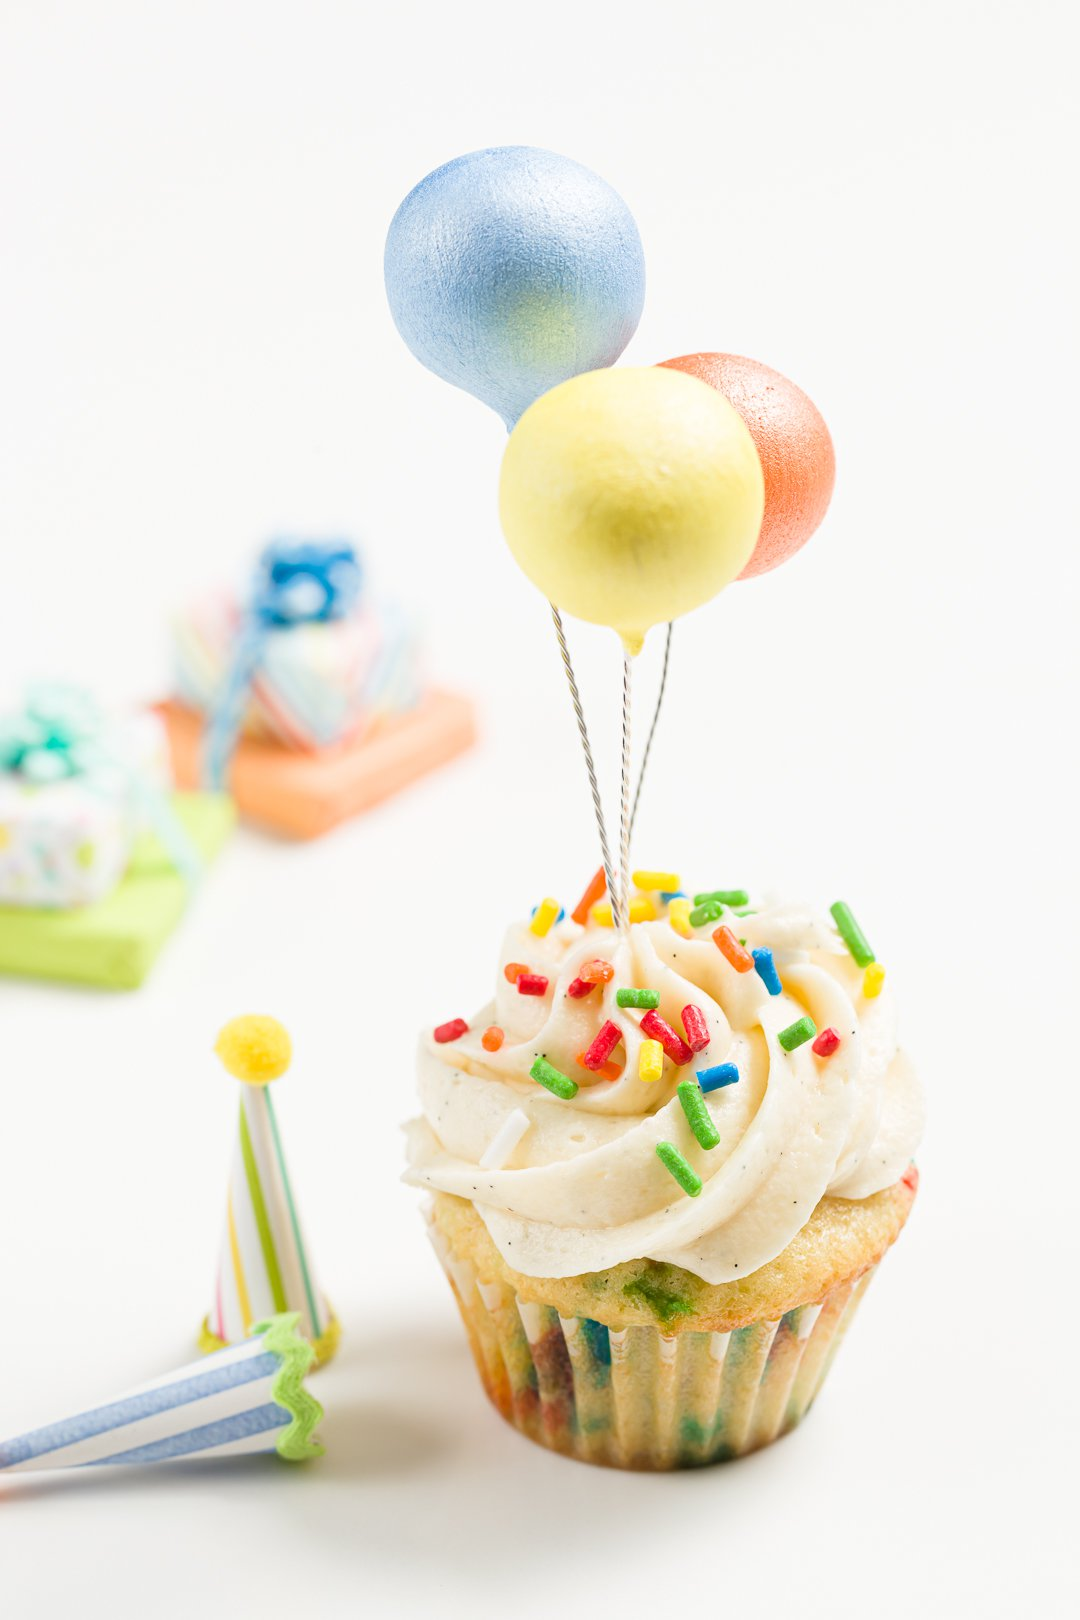 Birthday cupcake topped with balloons